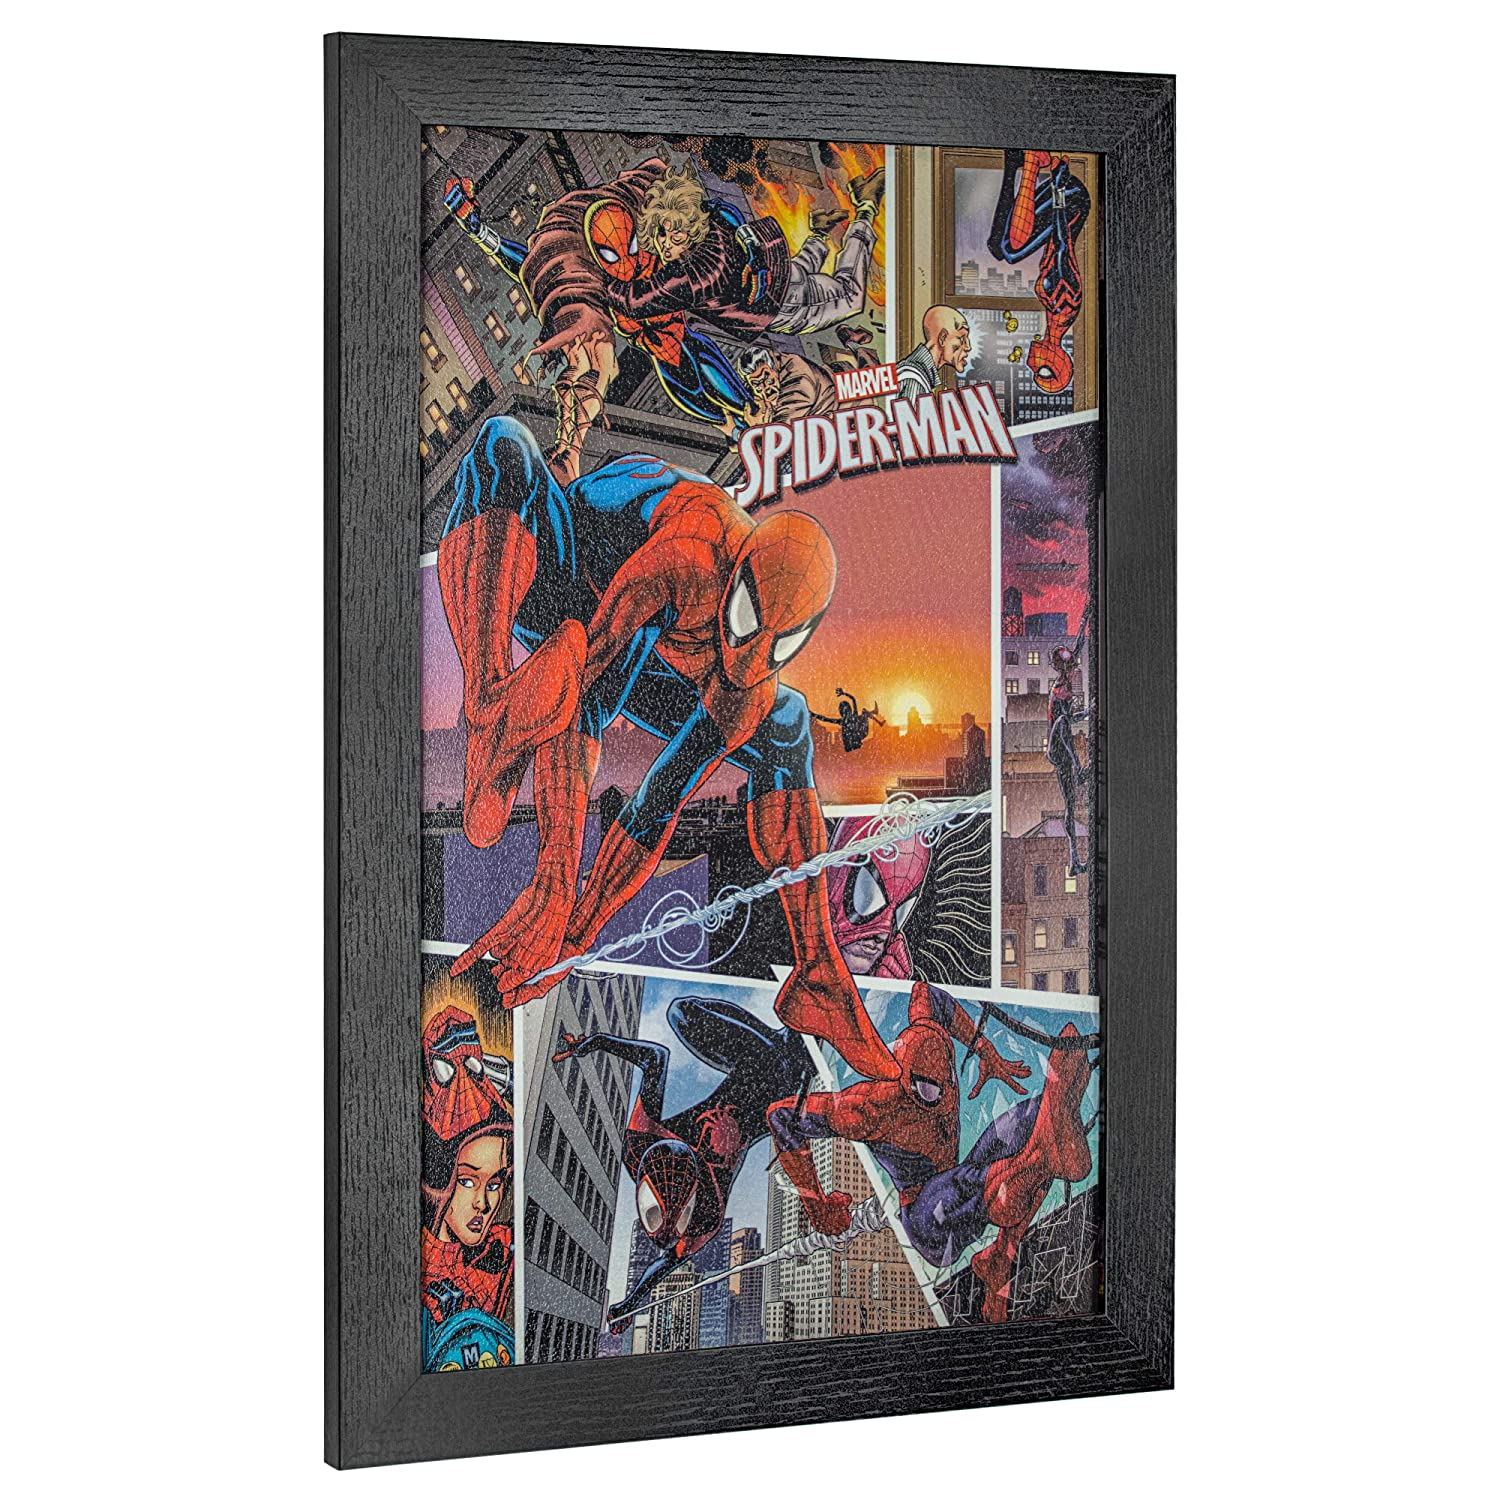 good Comic Book Wall Art Part - 13: Amazon.com: Officially Licensed Marvel Comics Spider-Man Spider-Verse Comic  Book Cover Framed Wall Art (19u201d H x 13u201d L): Home u0026 Kitchen